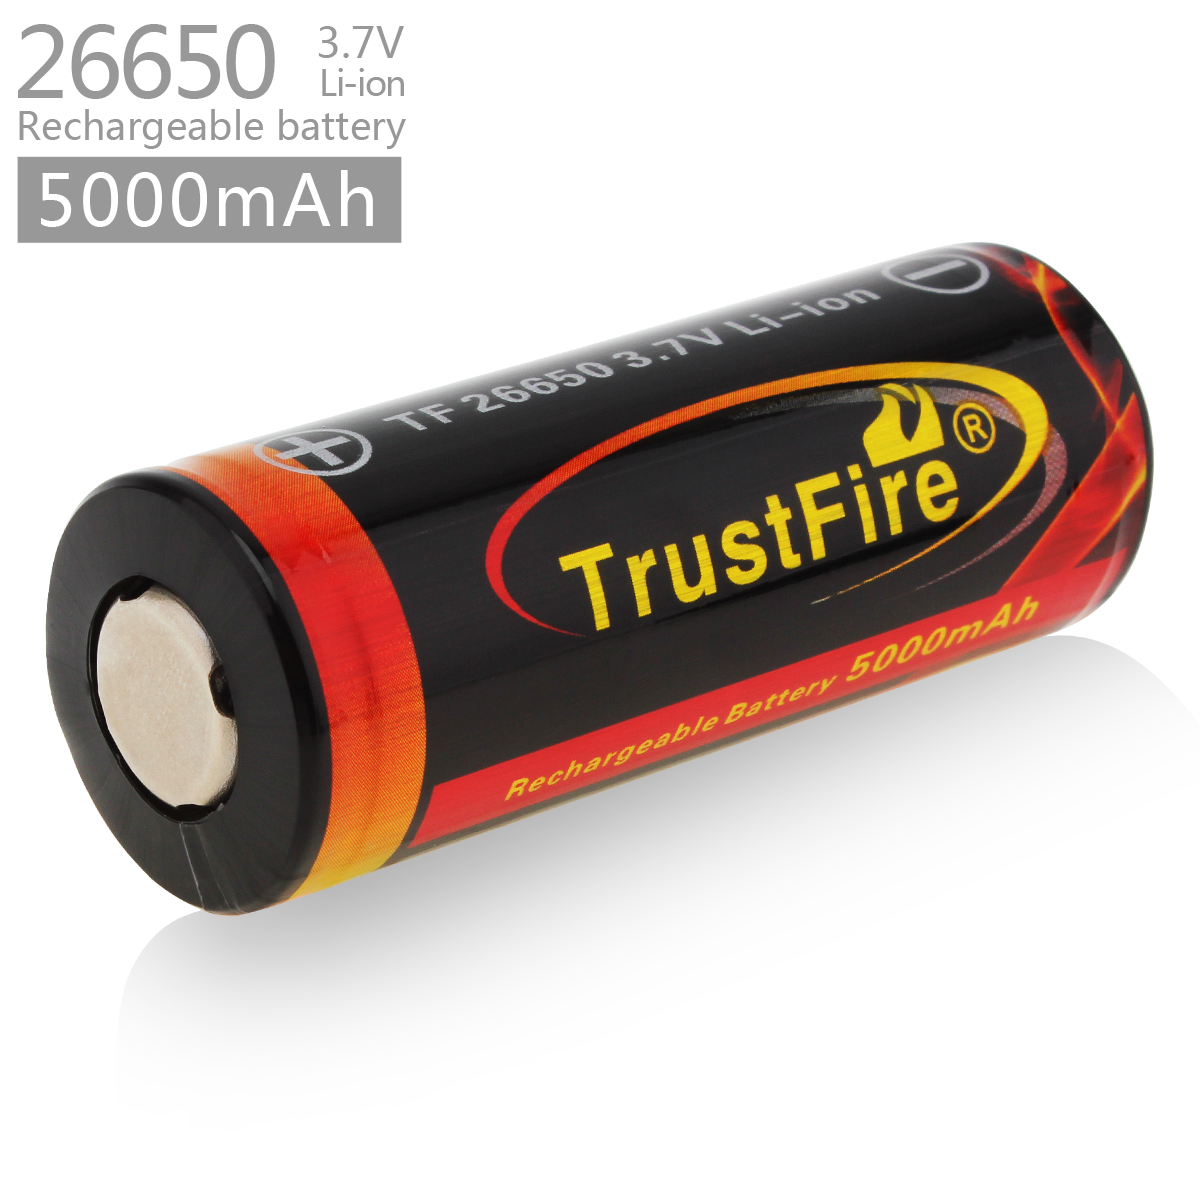 1pcs TrustFire 3.7V <font><b>26650</b></font> High Capacity 5000mAh Li-ion Rechargeable <font><b>Battery</b></font> with Protected PCB for LED Flashlights Headlamps image